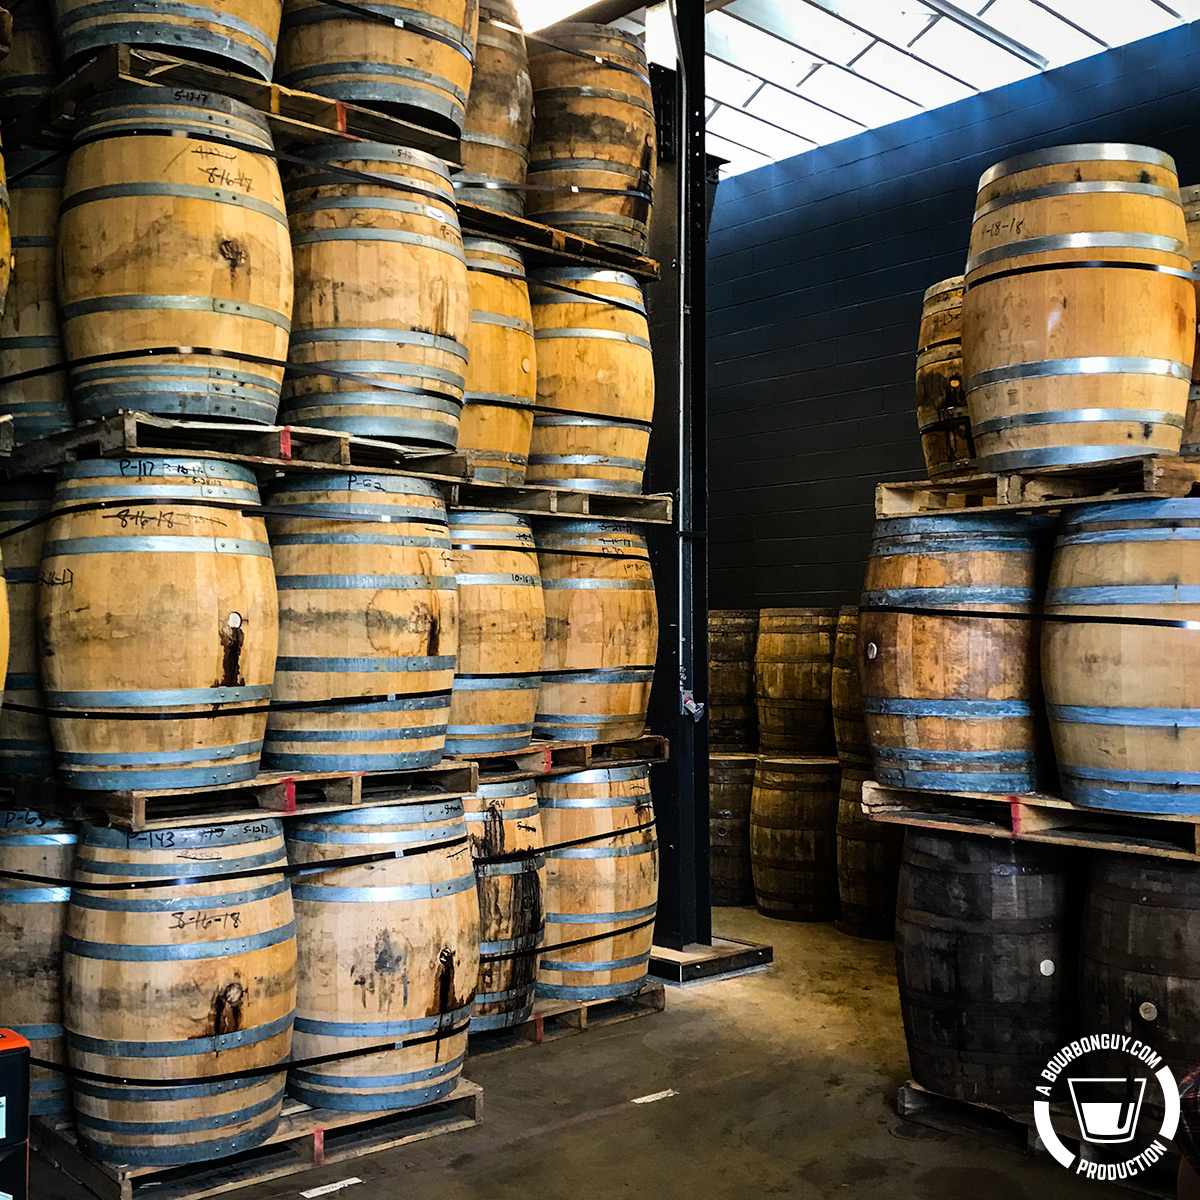 IMAGE: Angel's Envy Barrel Finishing room. Barrels are stacked on end and are on pallets.